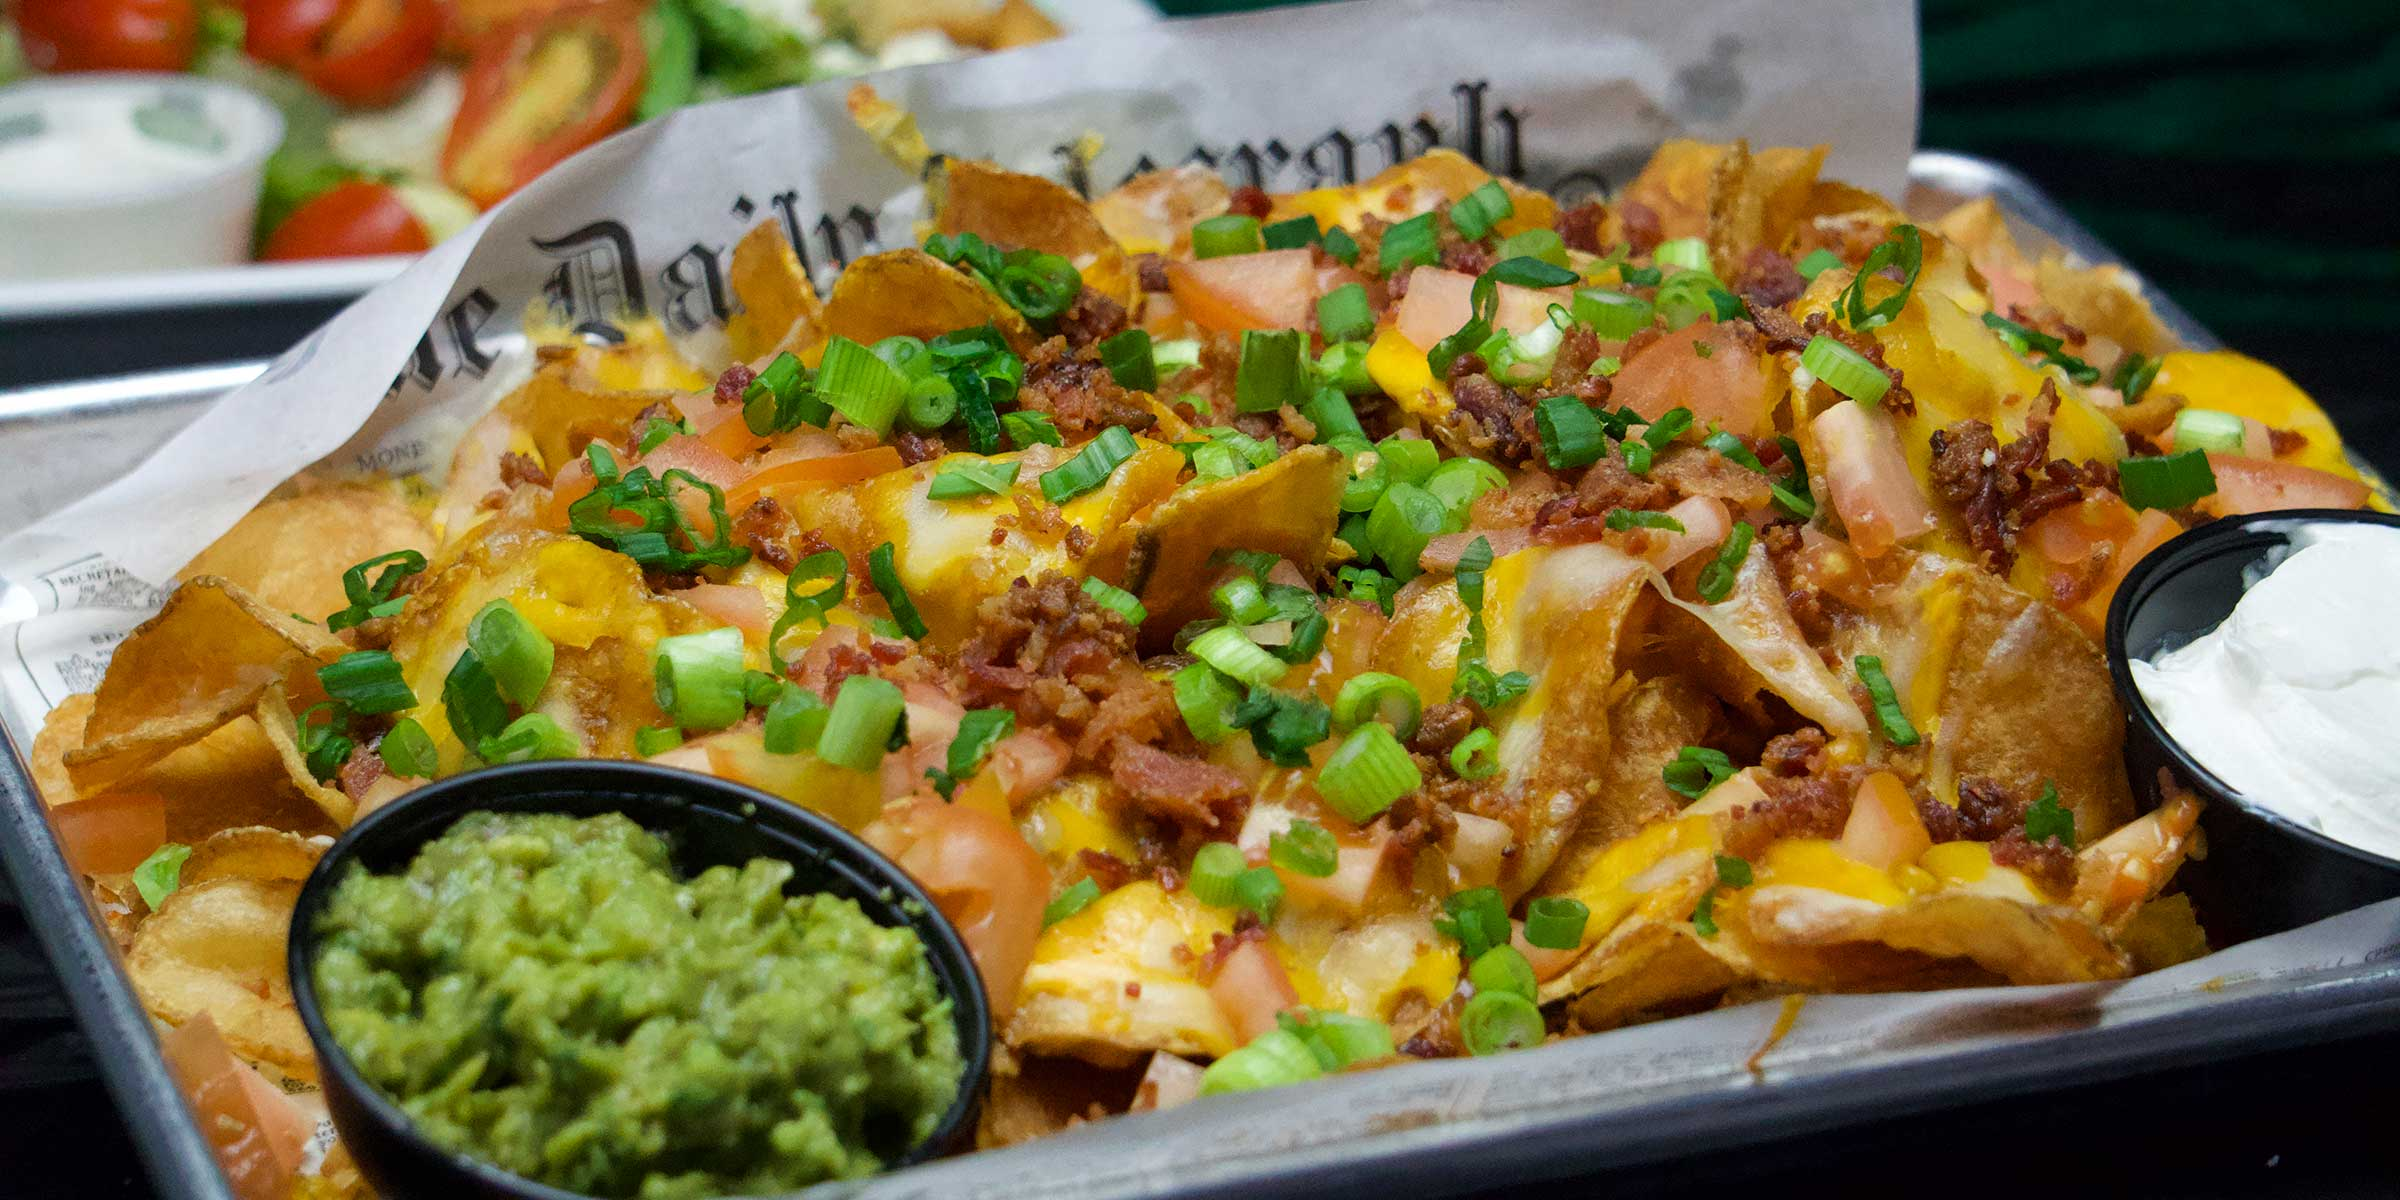 March Specials - Irish Nachos